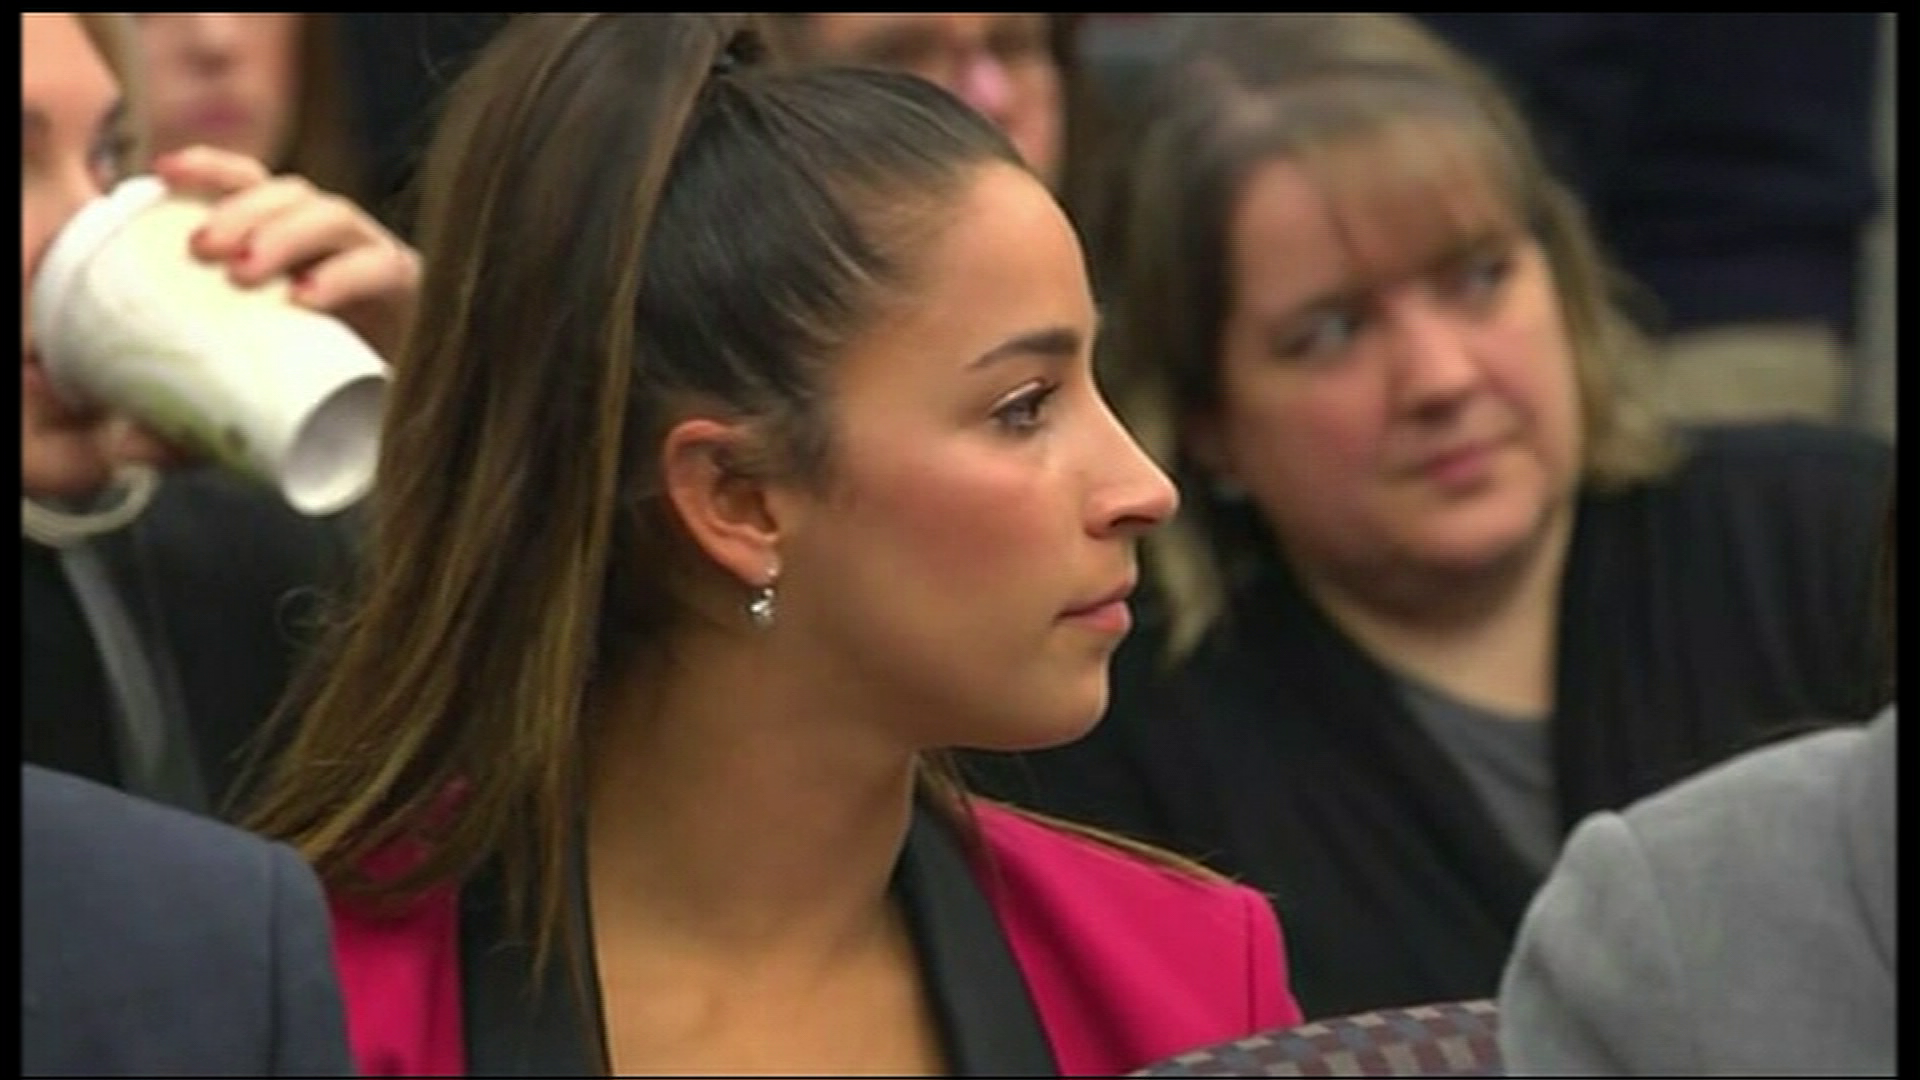 Former Olympic Gymnast Aly Raisman Gets Applause for Larry Nassar Testimony